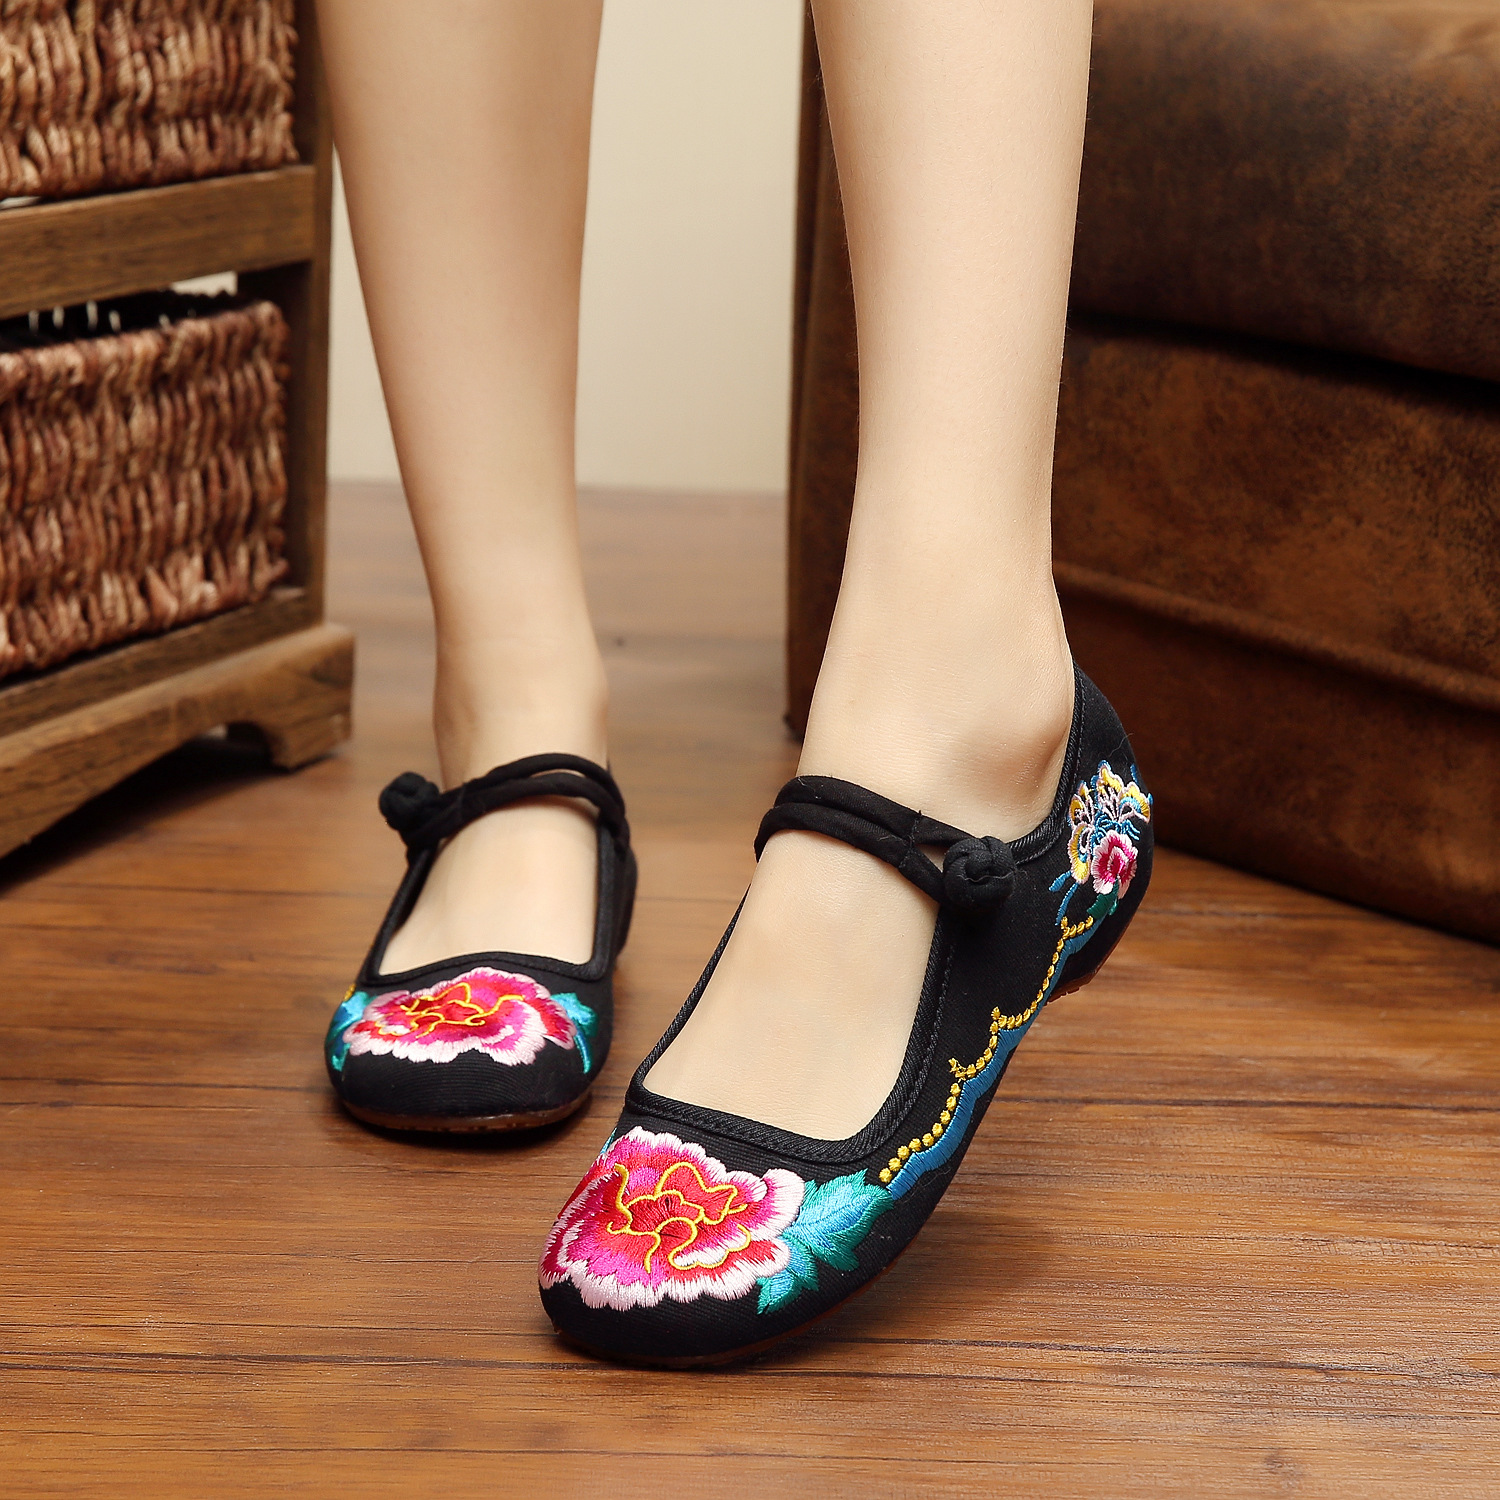 New Spring Chinese style old Beijing delicate fashion flowers embroidery ladies travel flats shoes  oxford shoes for women<br><br>Aliexpress